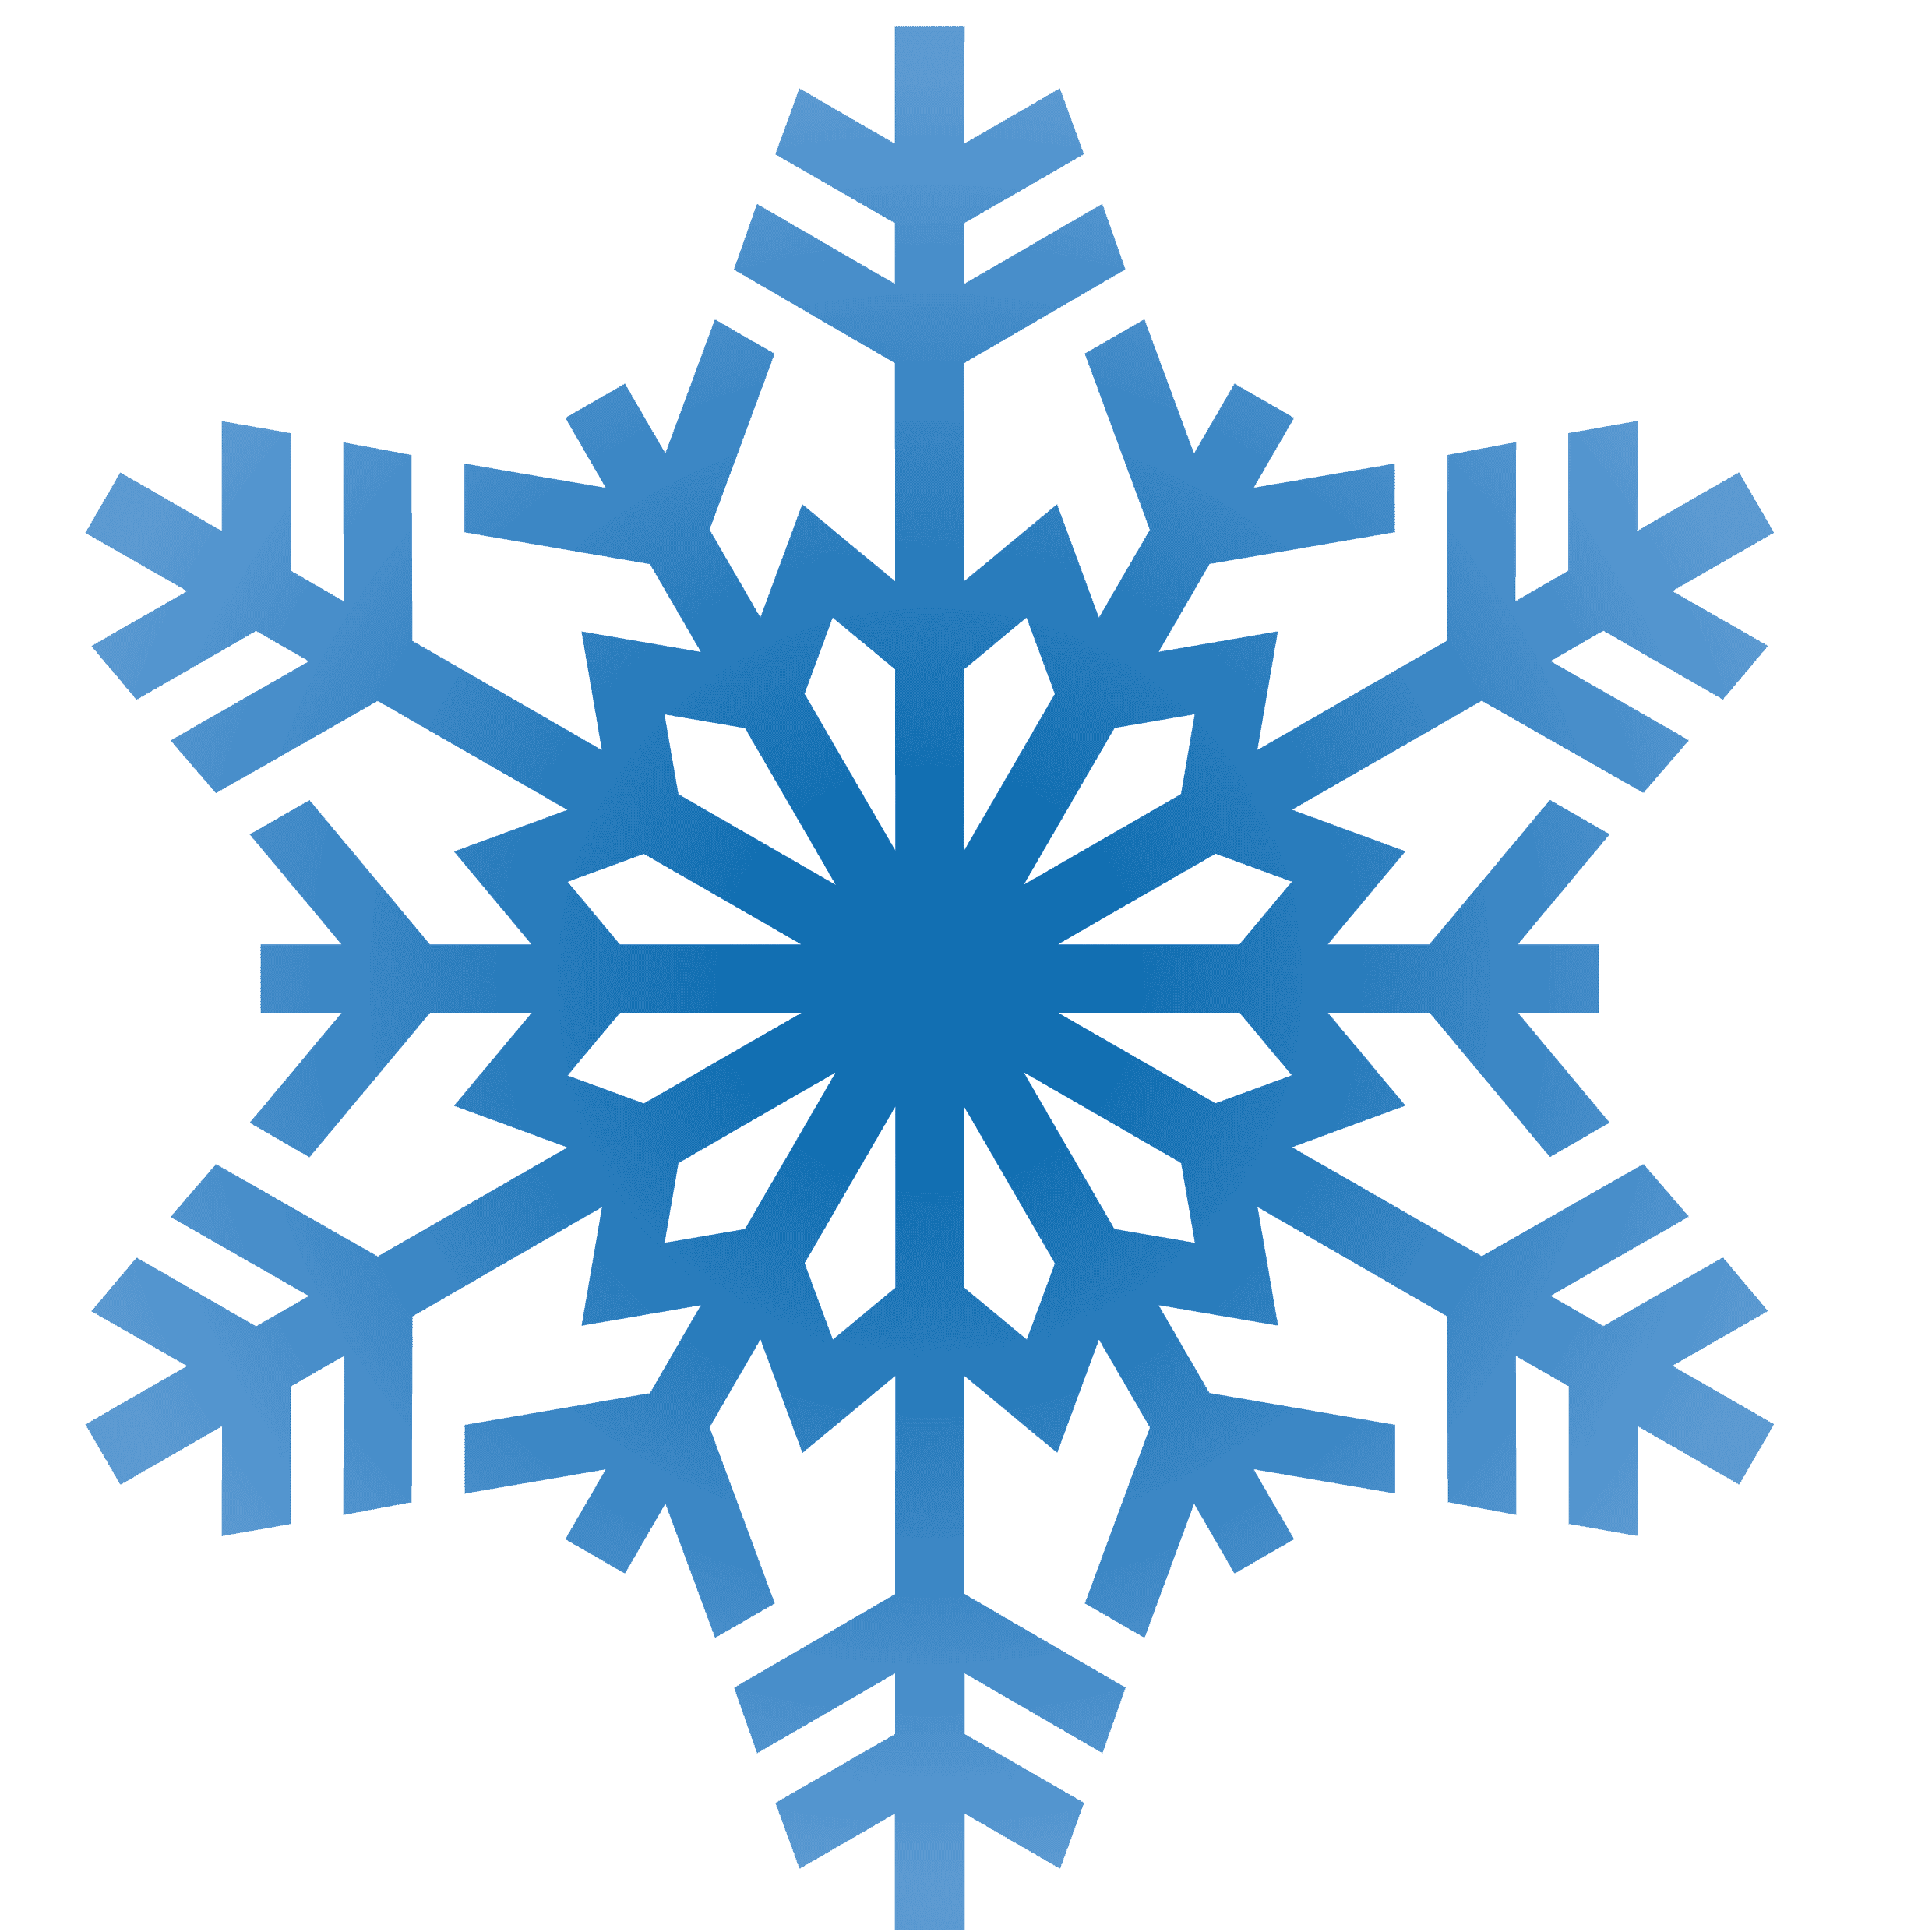 Christmas Snowflake Clip Art Transparent Background